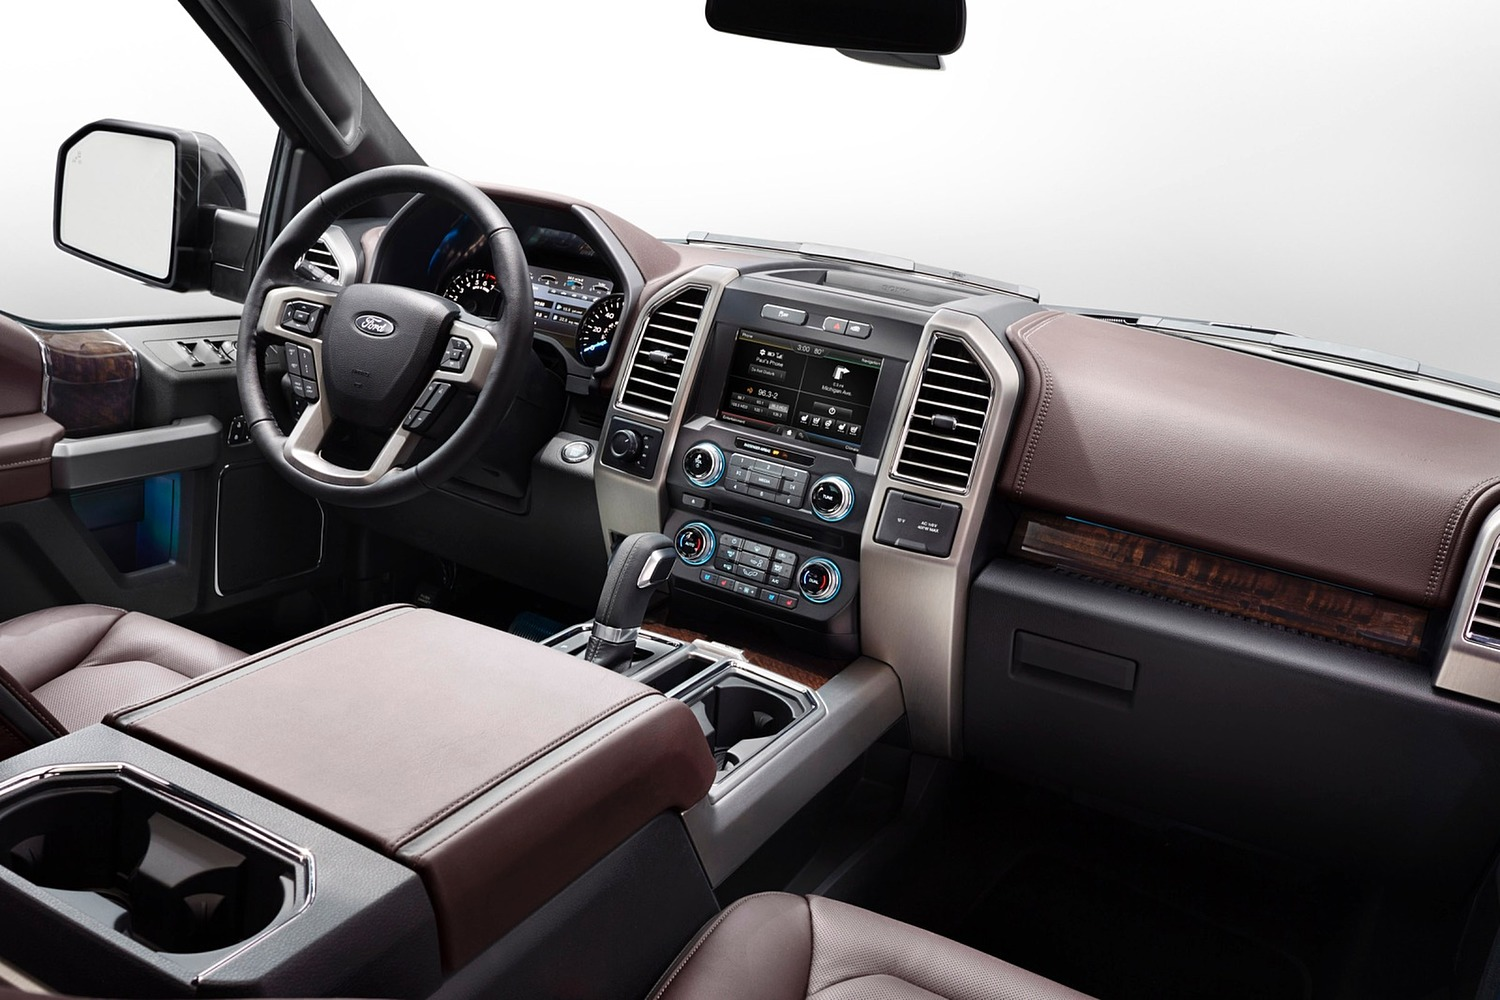 2015 Ford F-150 Platinum Crew Cab Pickup Interior